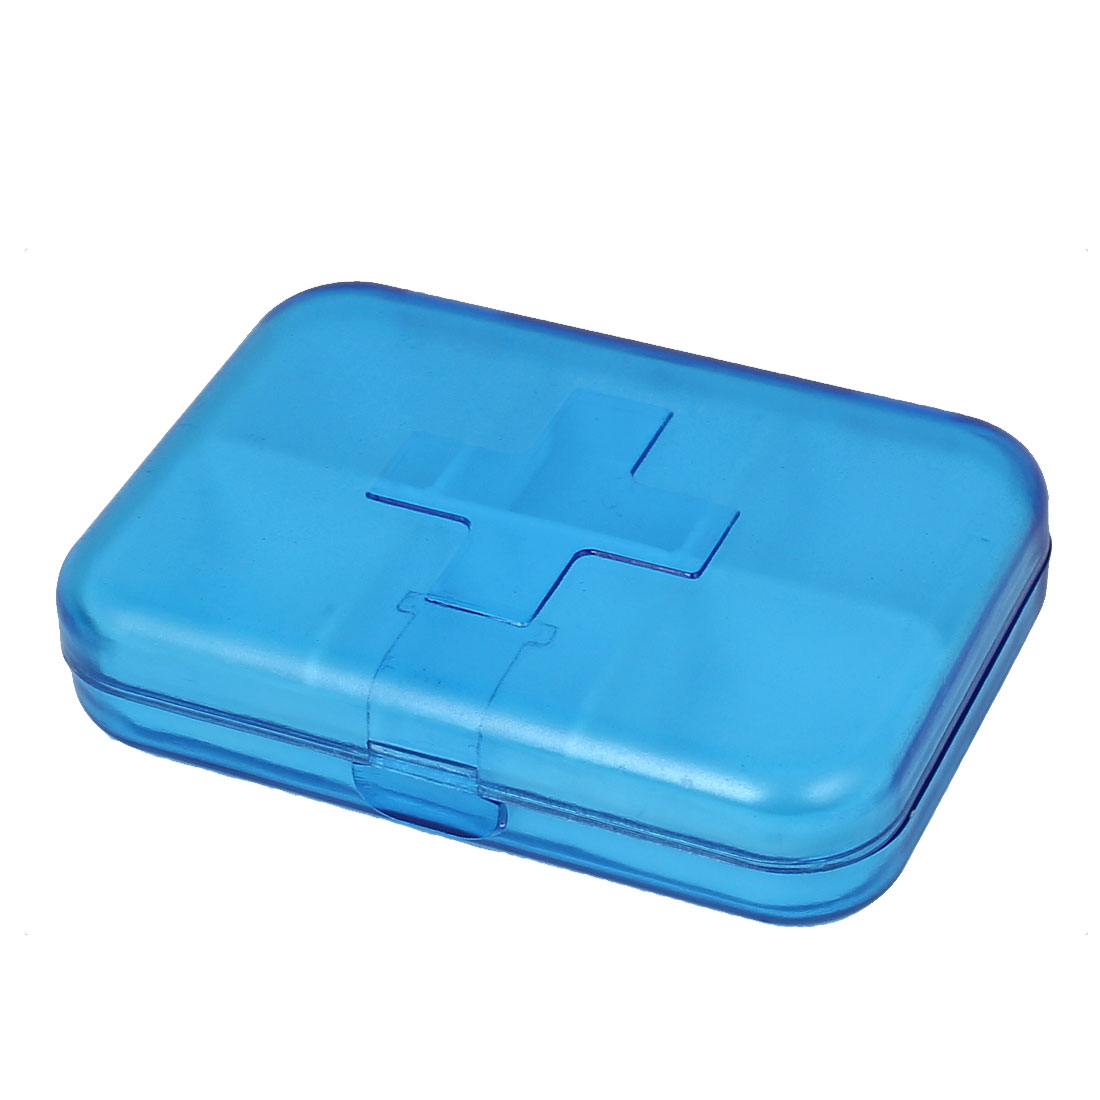 Plastic Portable 6 Compartments Pill Drug Storage Box Case Container Clear Blue